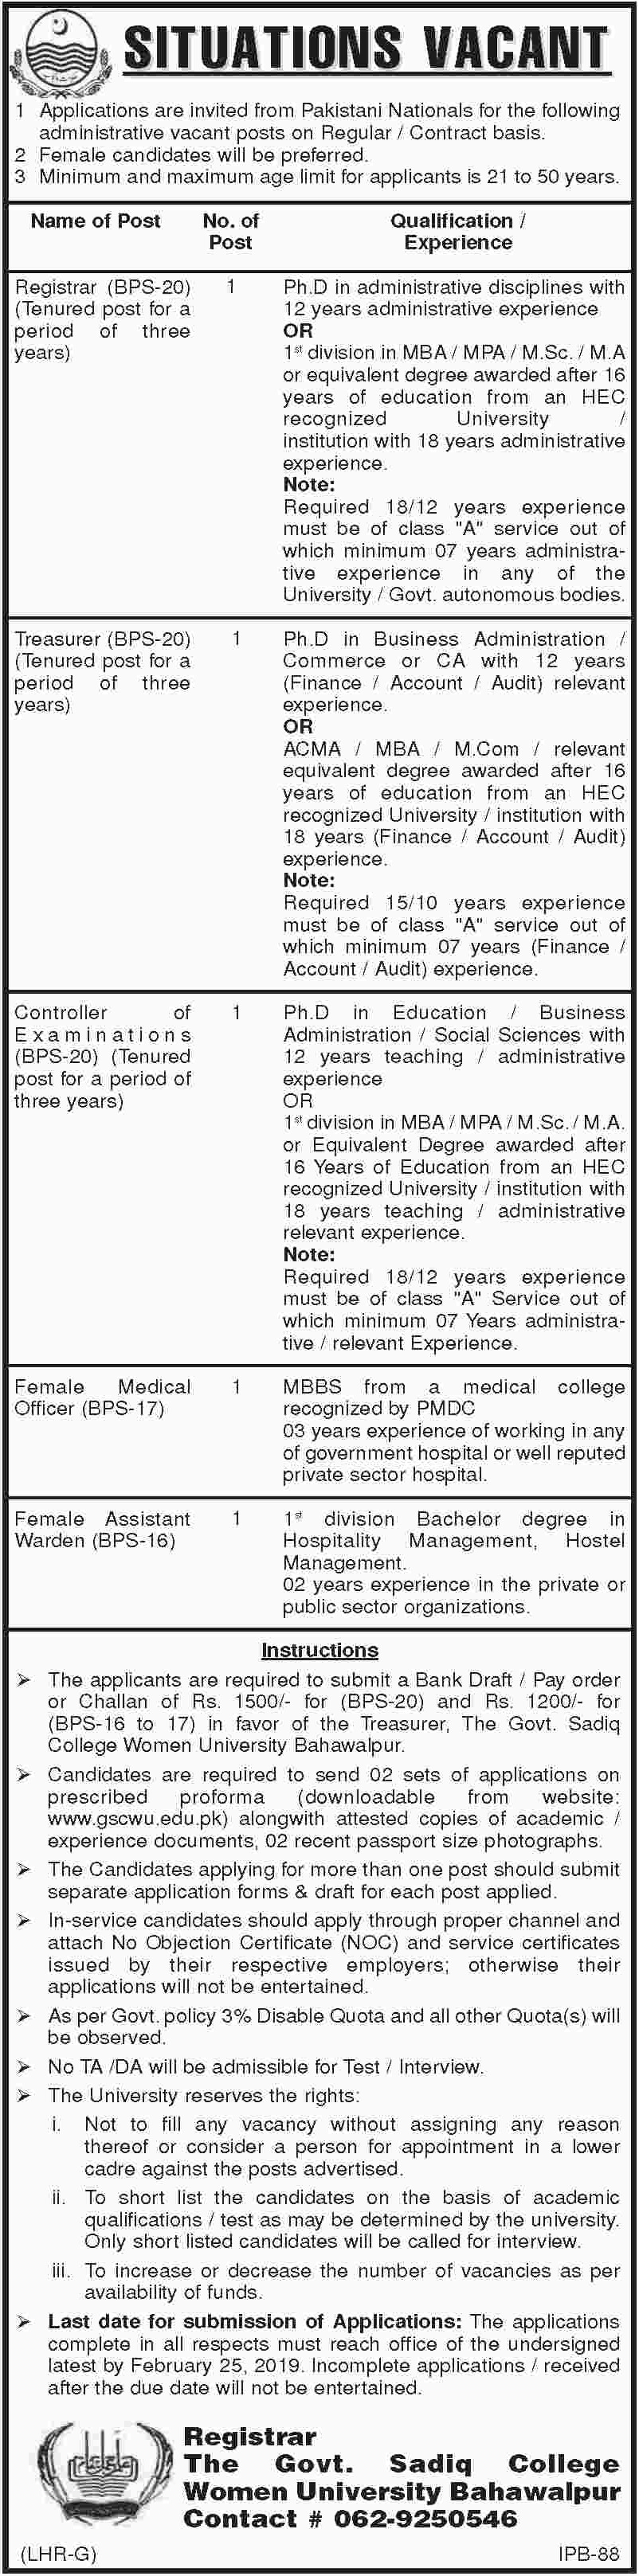 Govt Sadiq College Women University Bahawalpur Jobs 2019 Latest